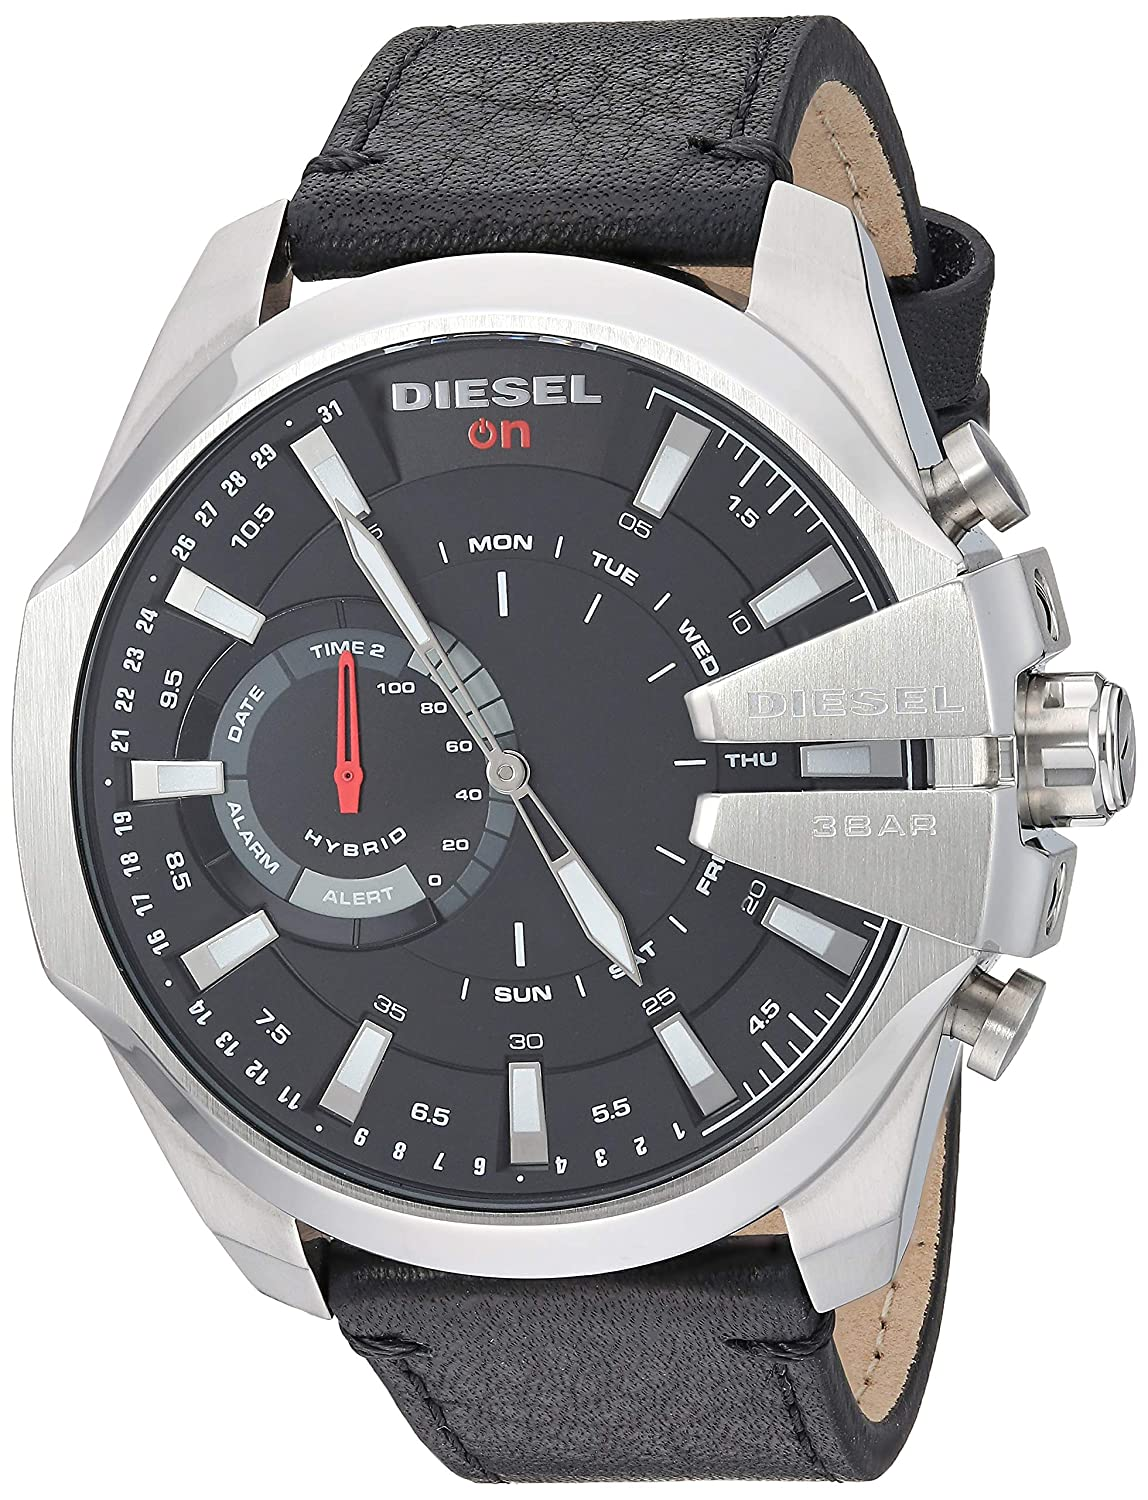 Diesel Hybrid Smartwatch - Negro Piel Mega Chief: Amazon.es ...